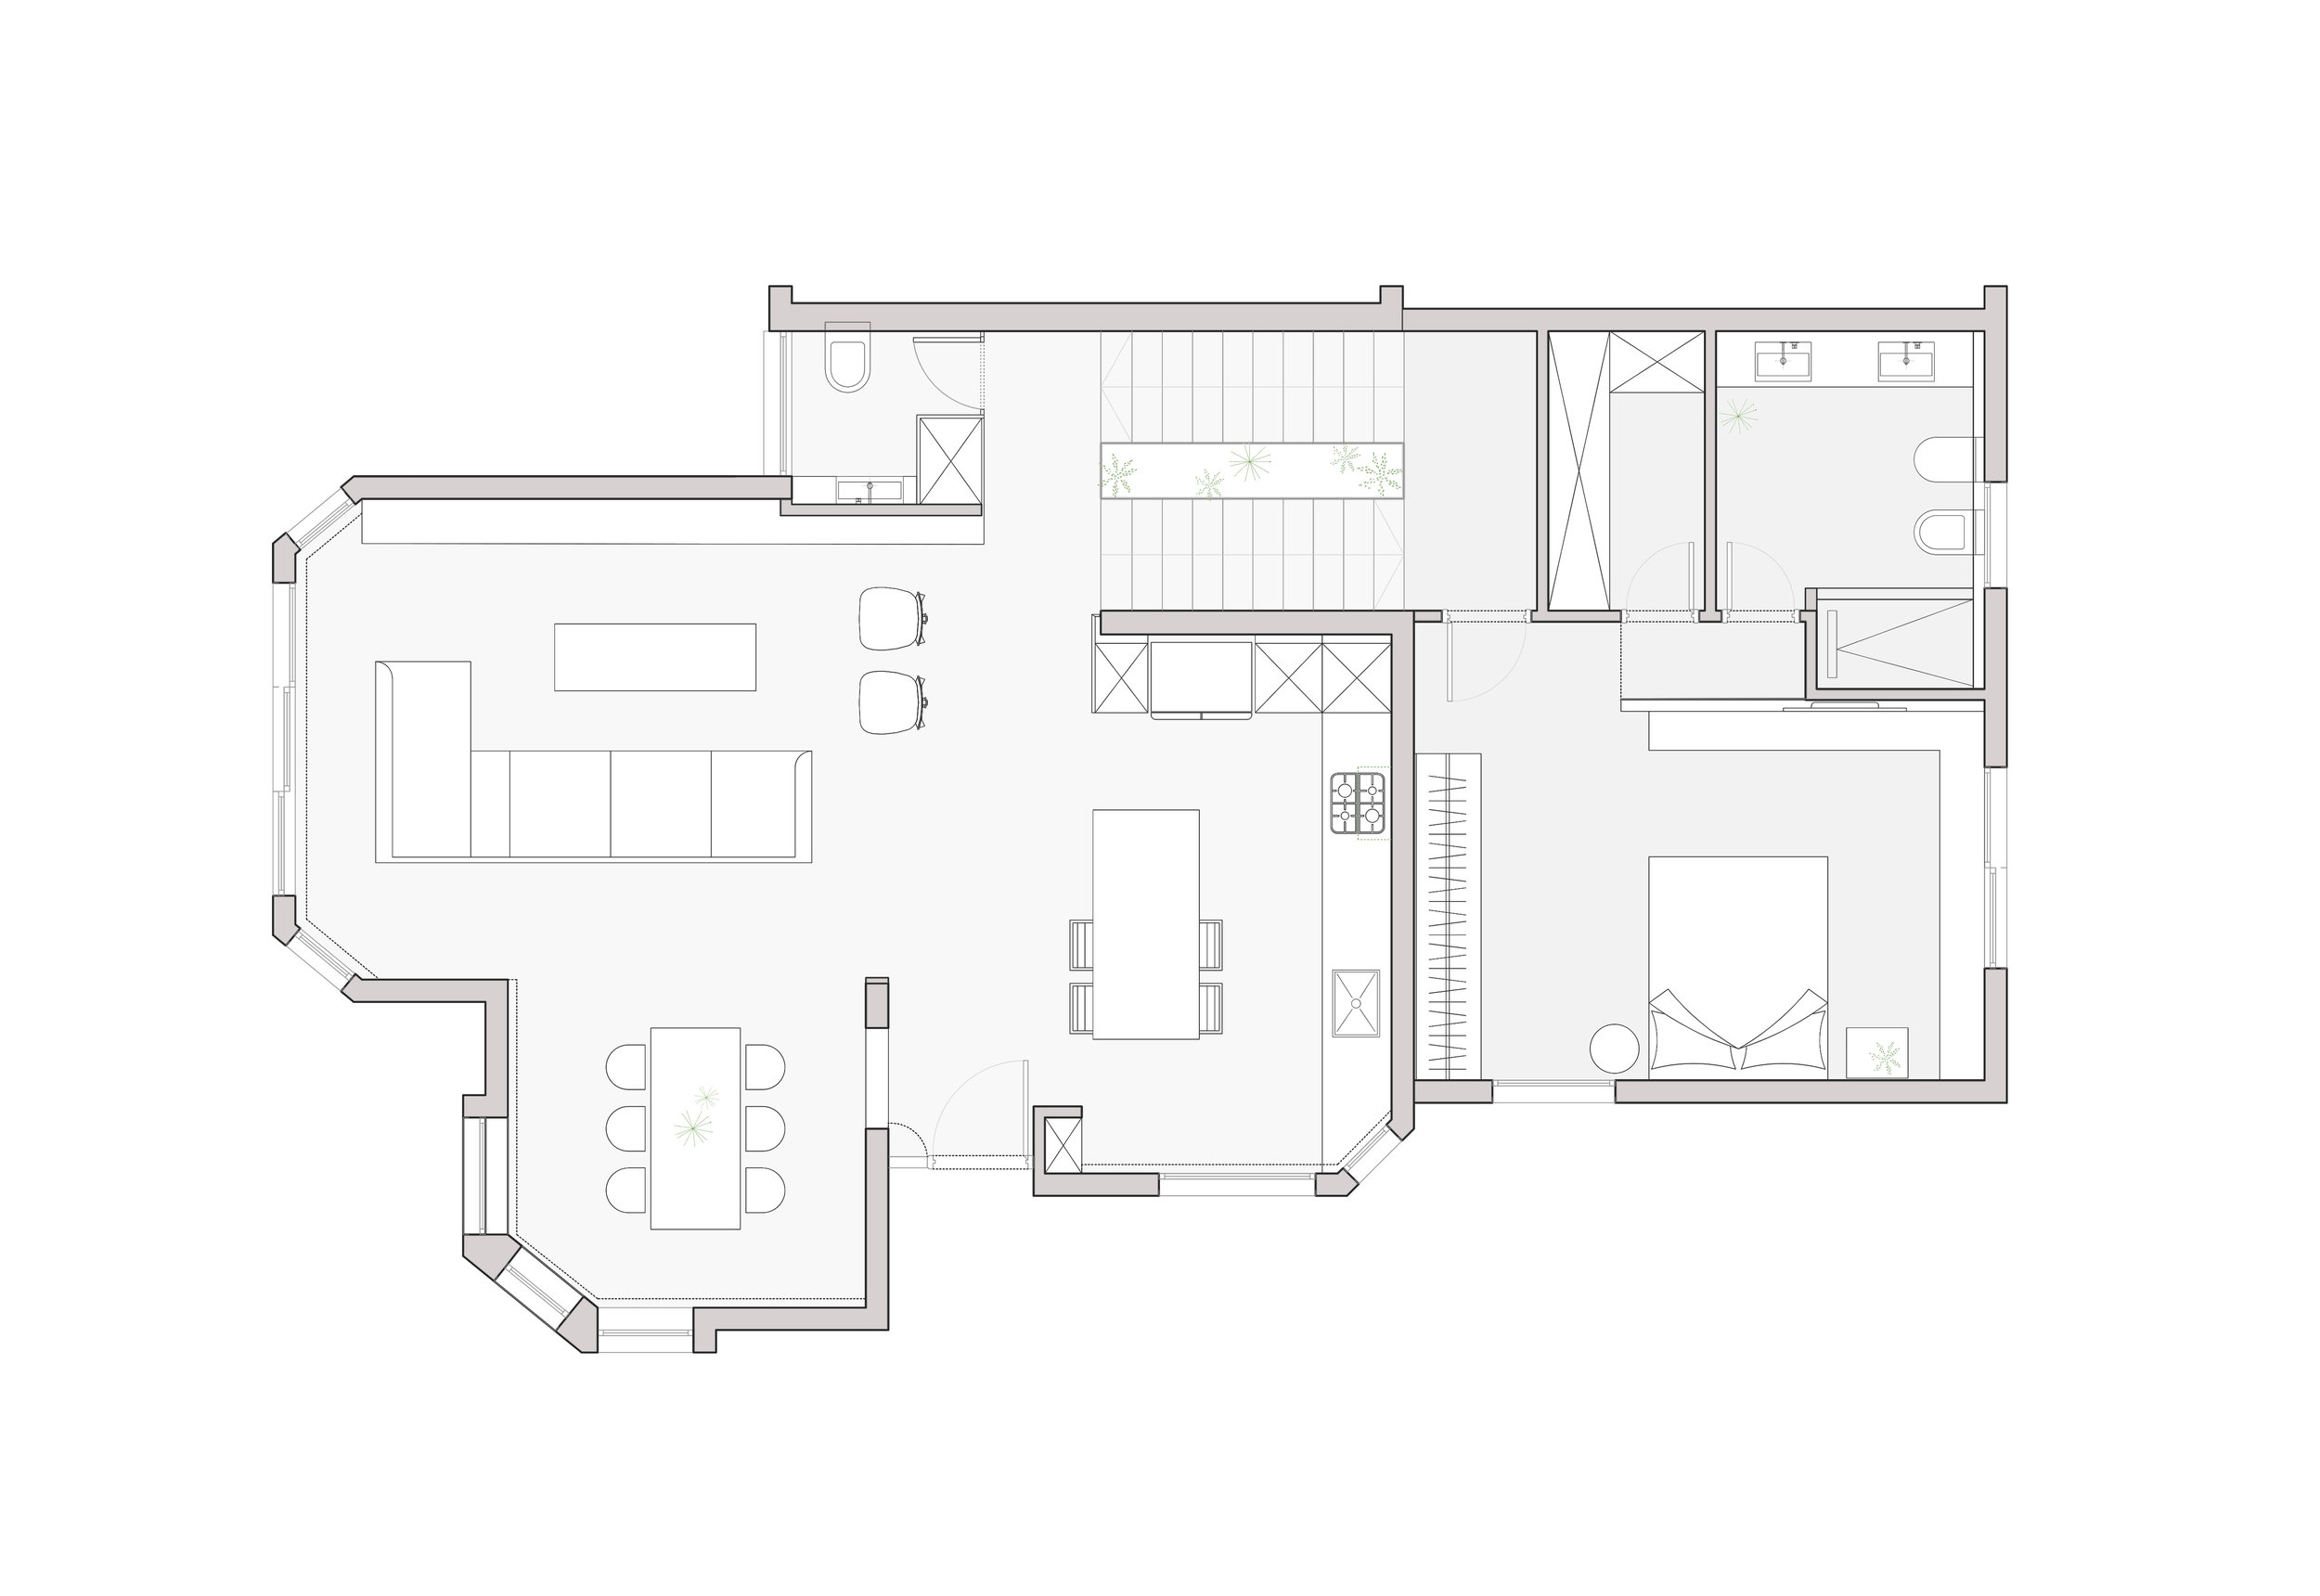 /Users/noa/Architecture/Projects- This is then/בצרי/dwg/BSR